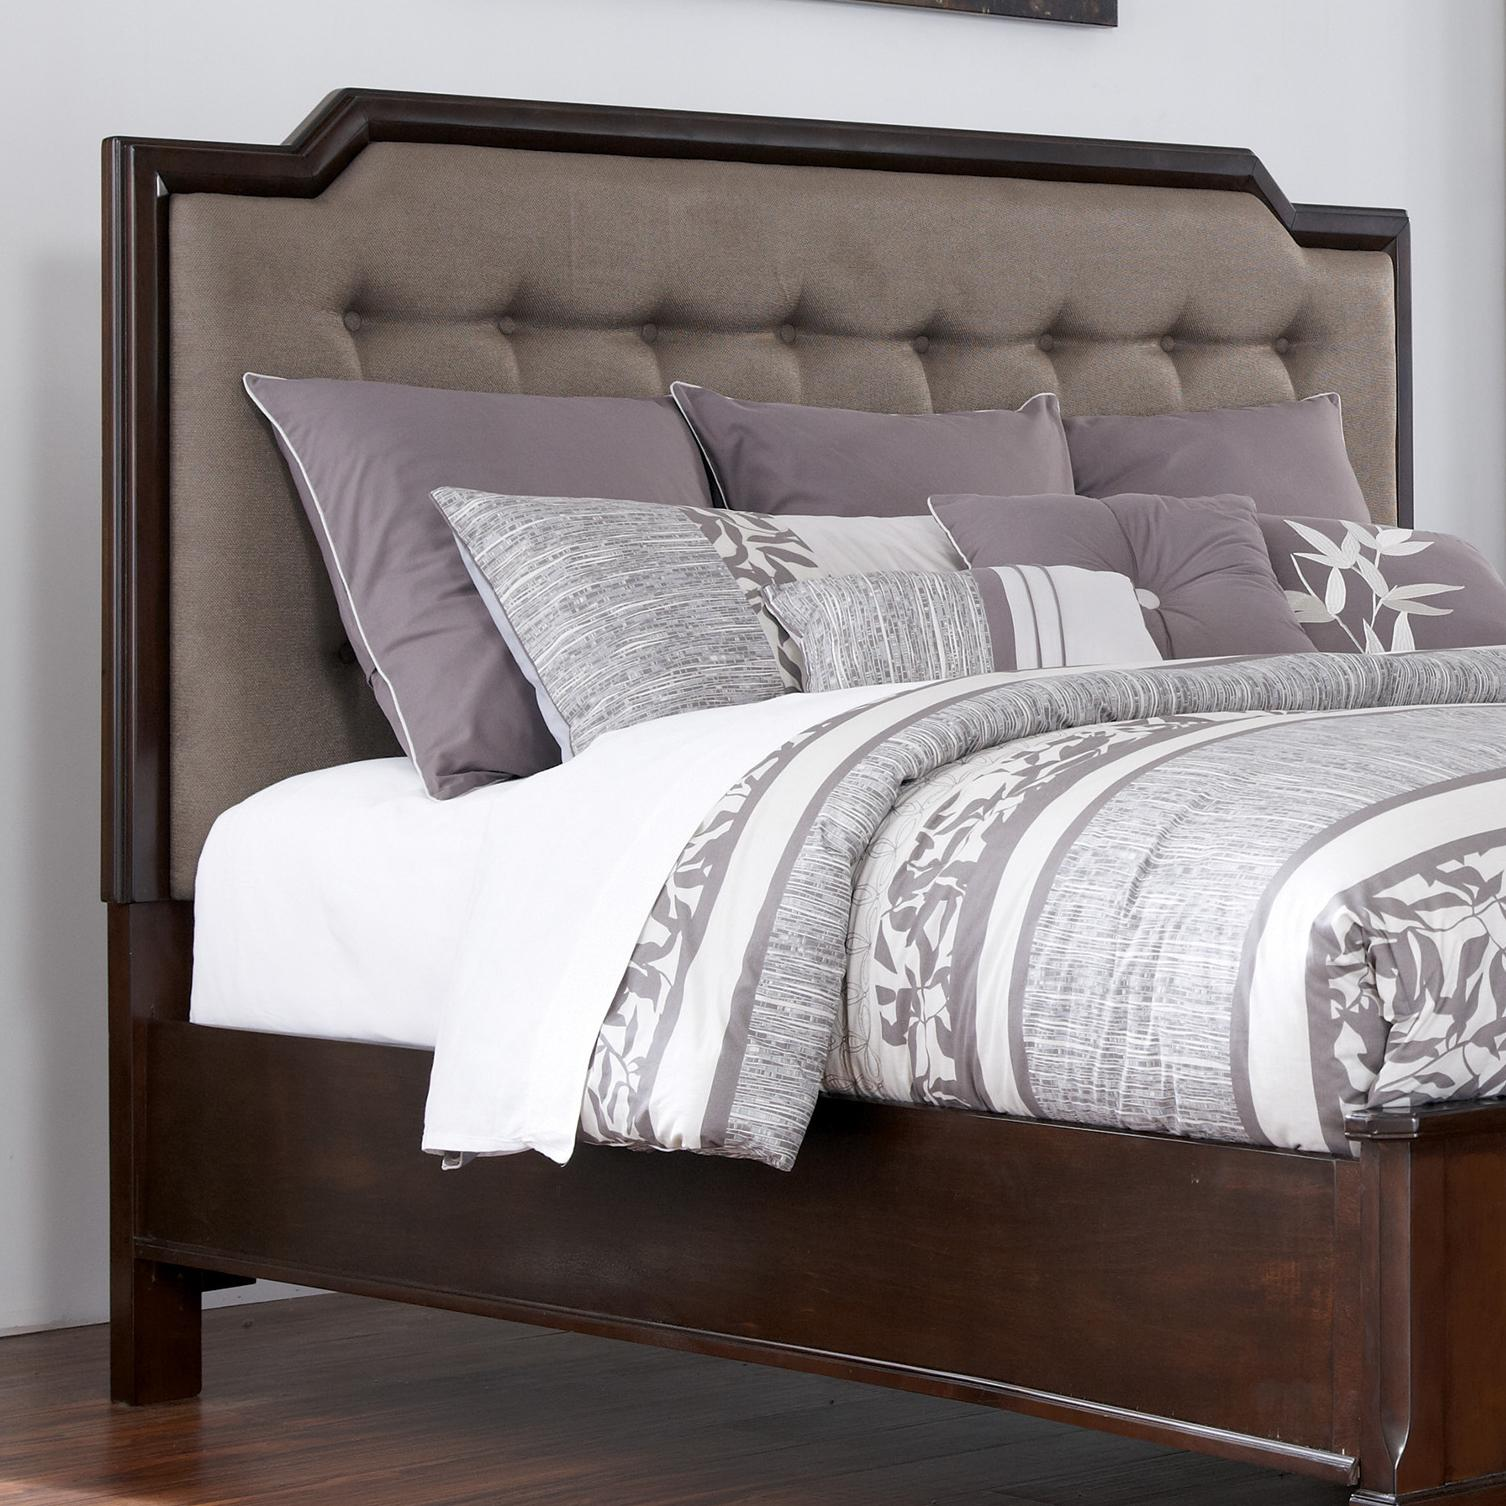 fabric white sorinella of frame padded upholstered full footboard black size queen beds headboard headboards ashley king with bed cheap